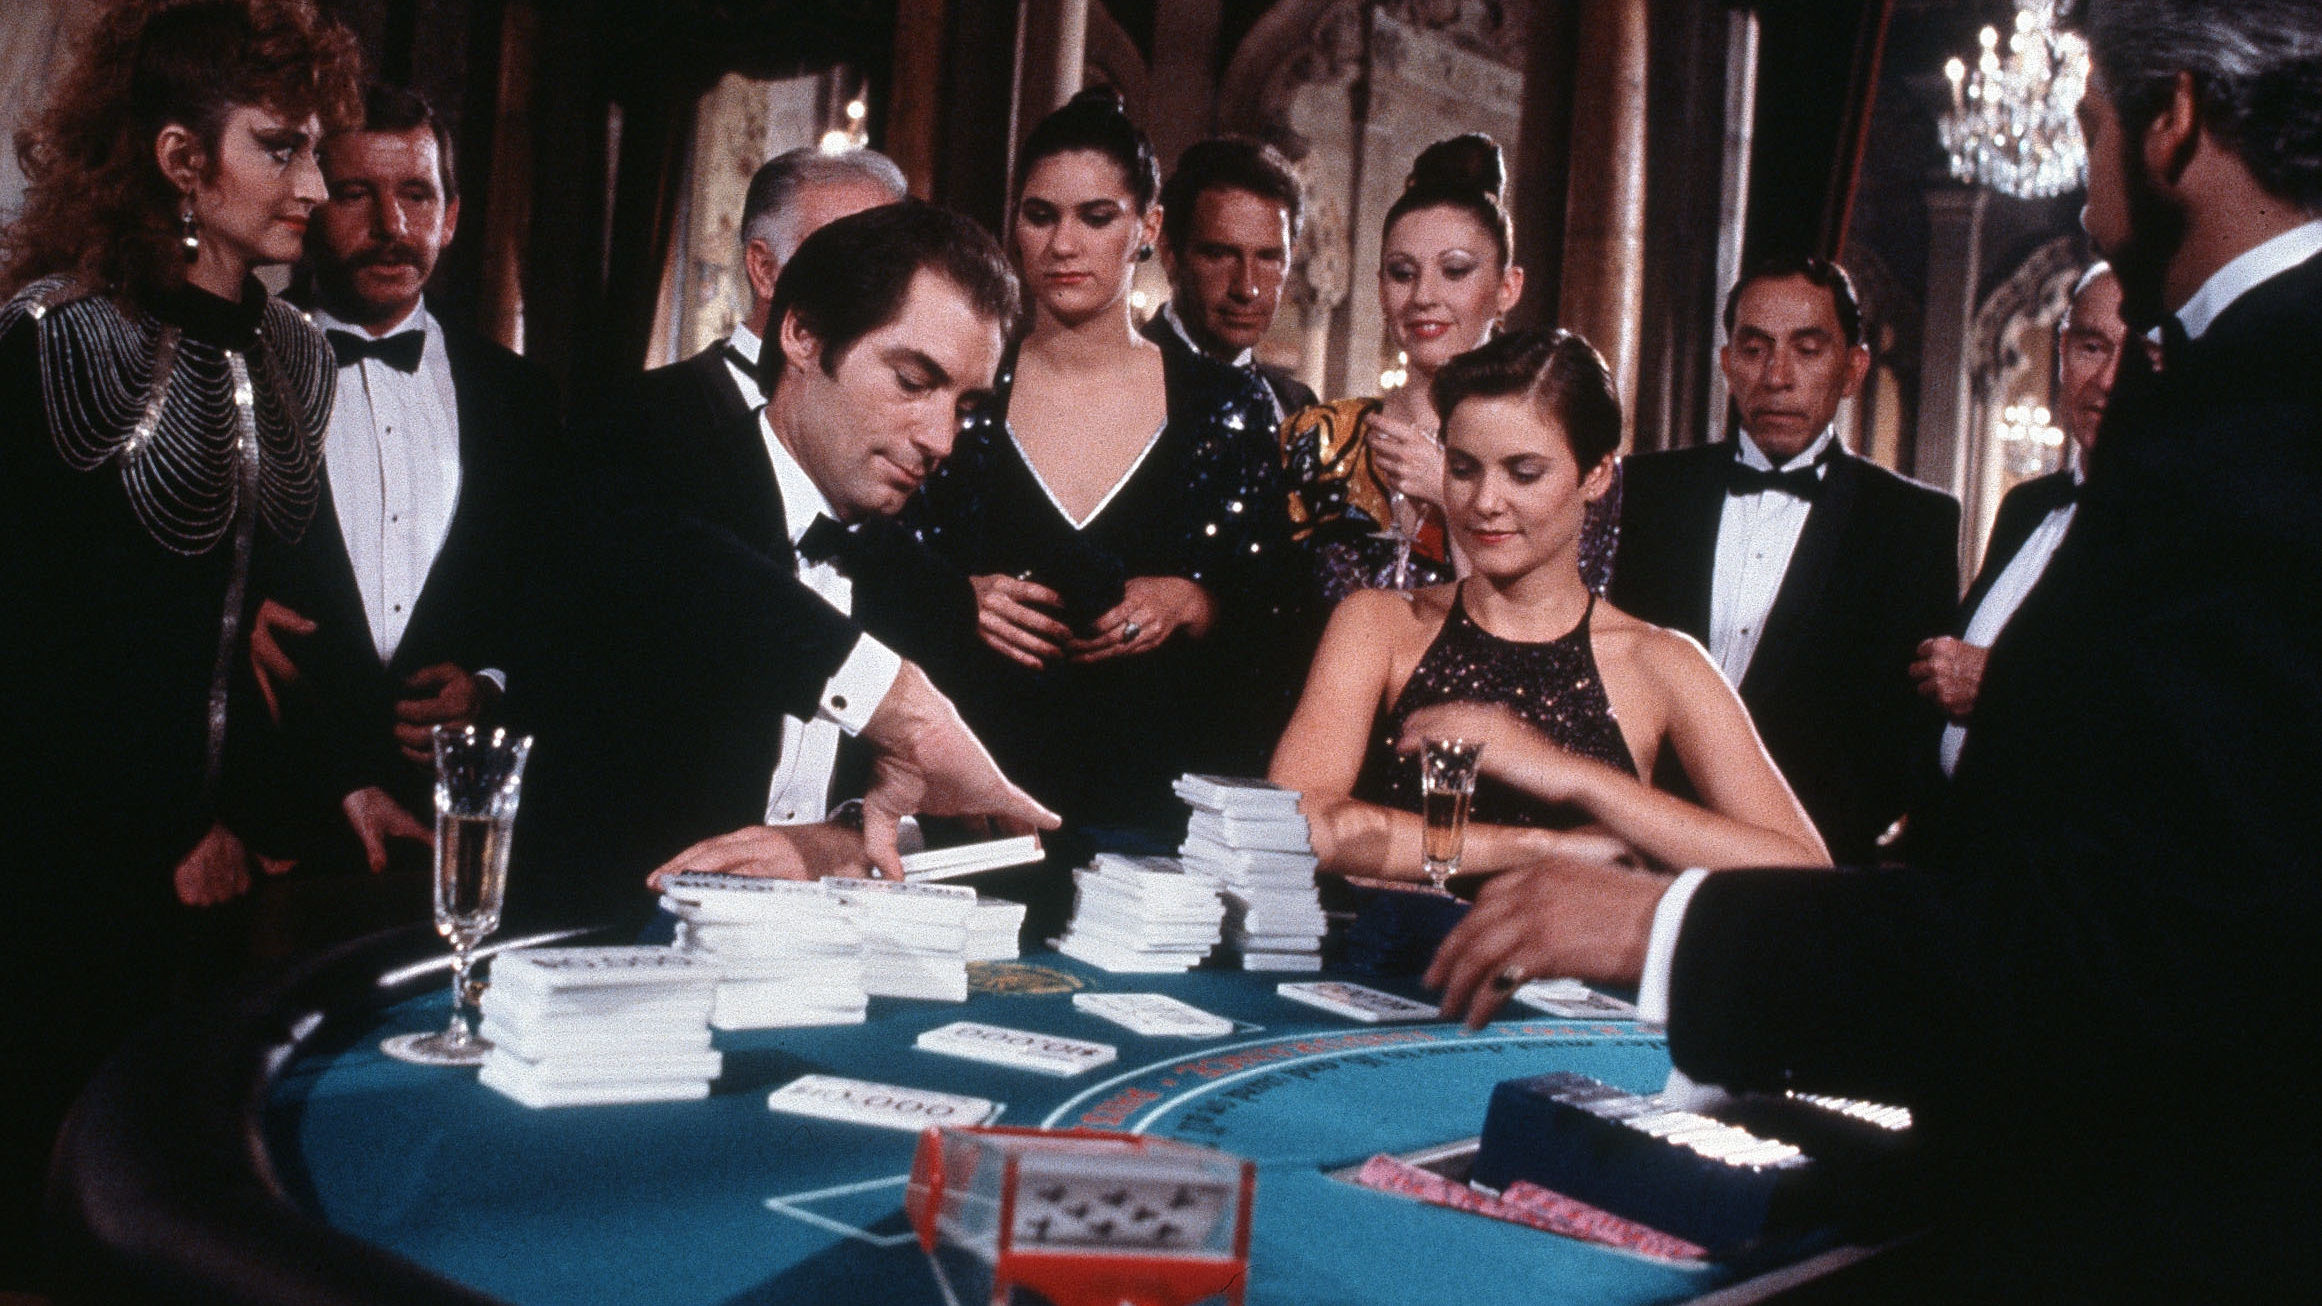 licence-to-kill blackjack movies film scenes